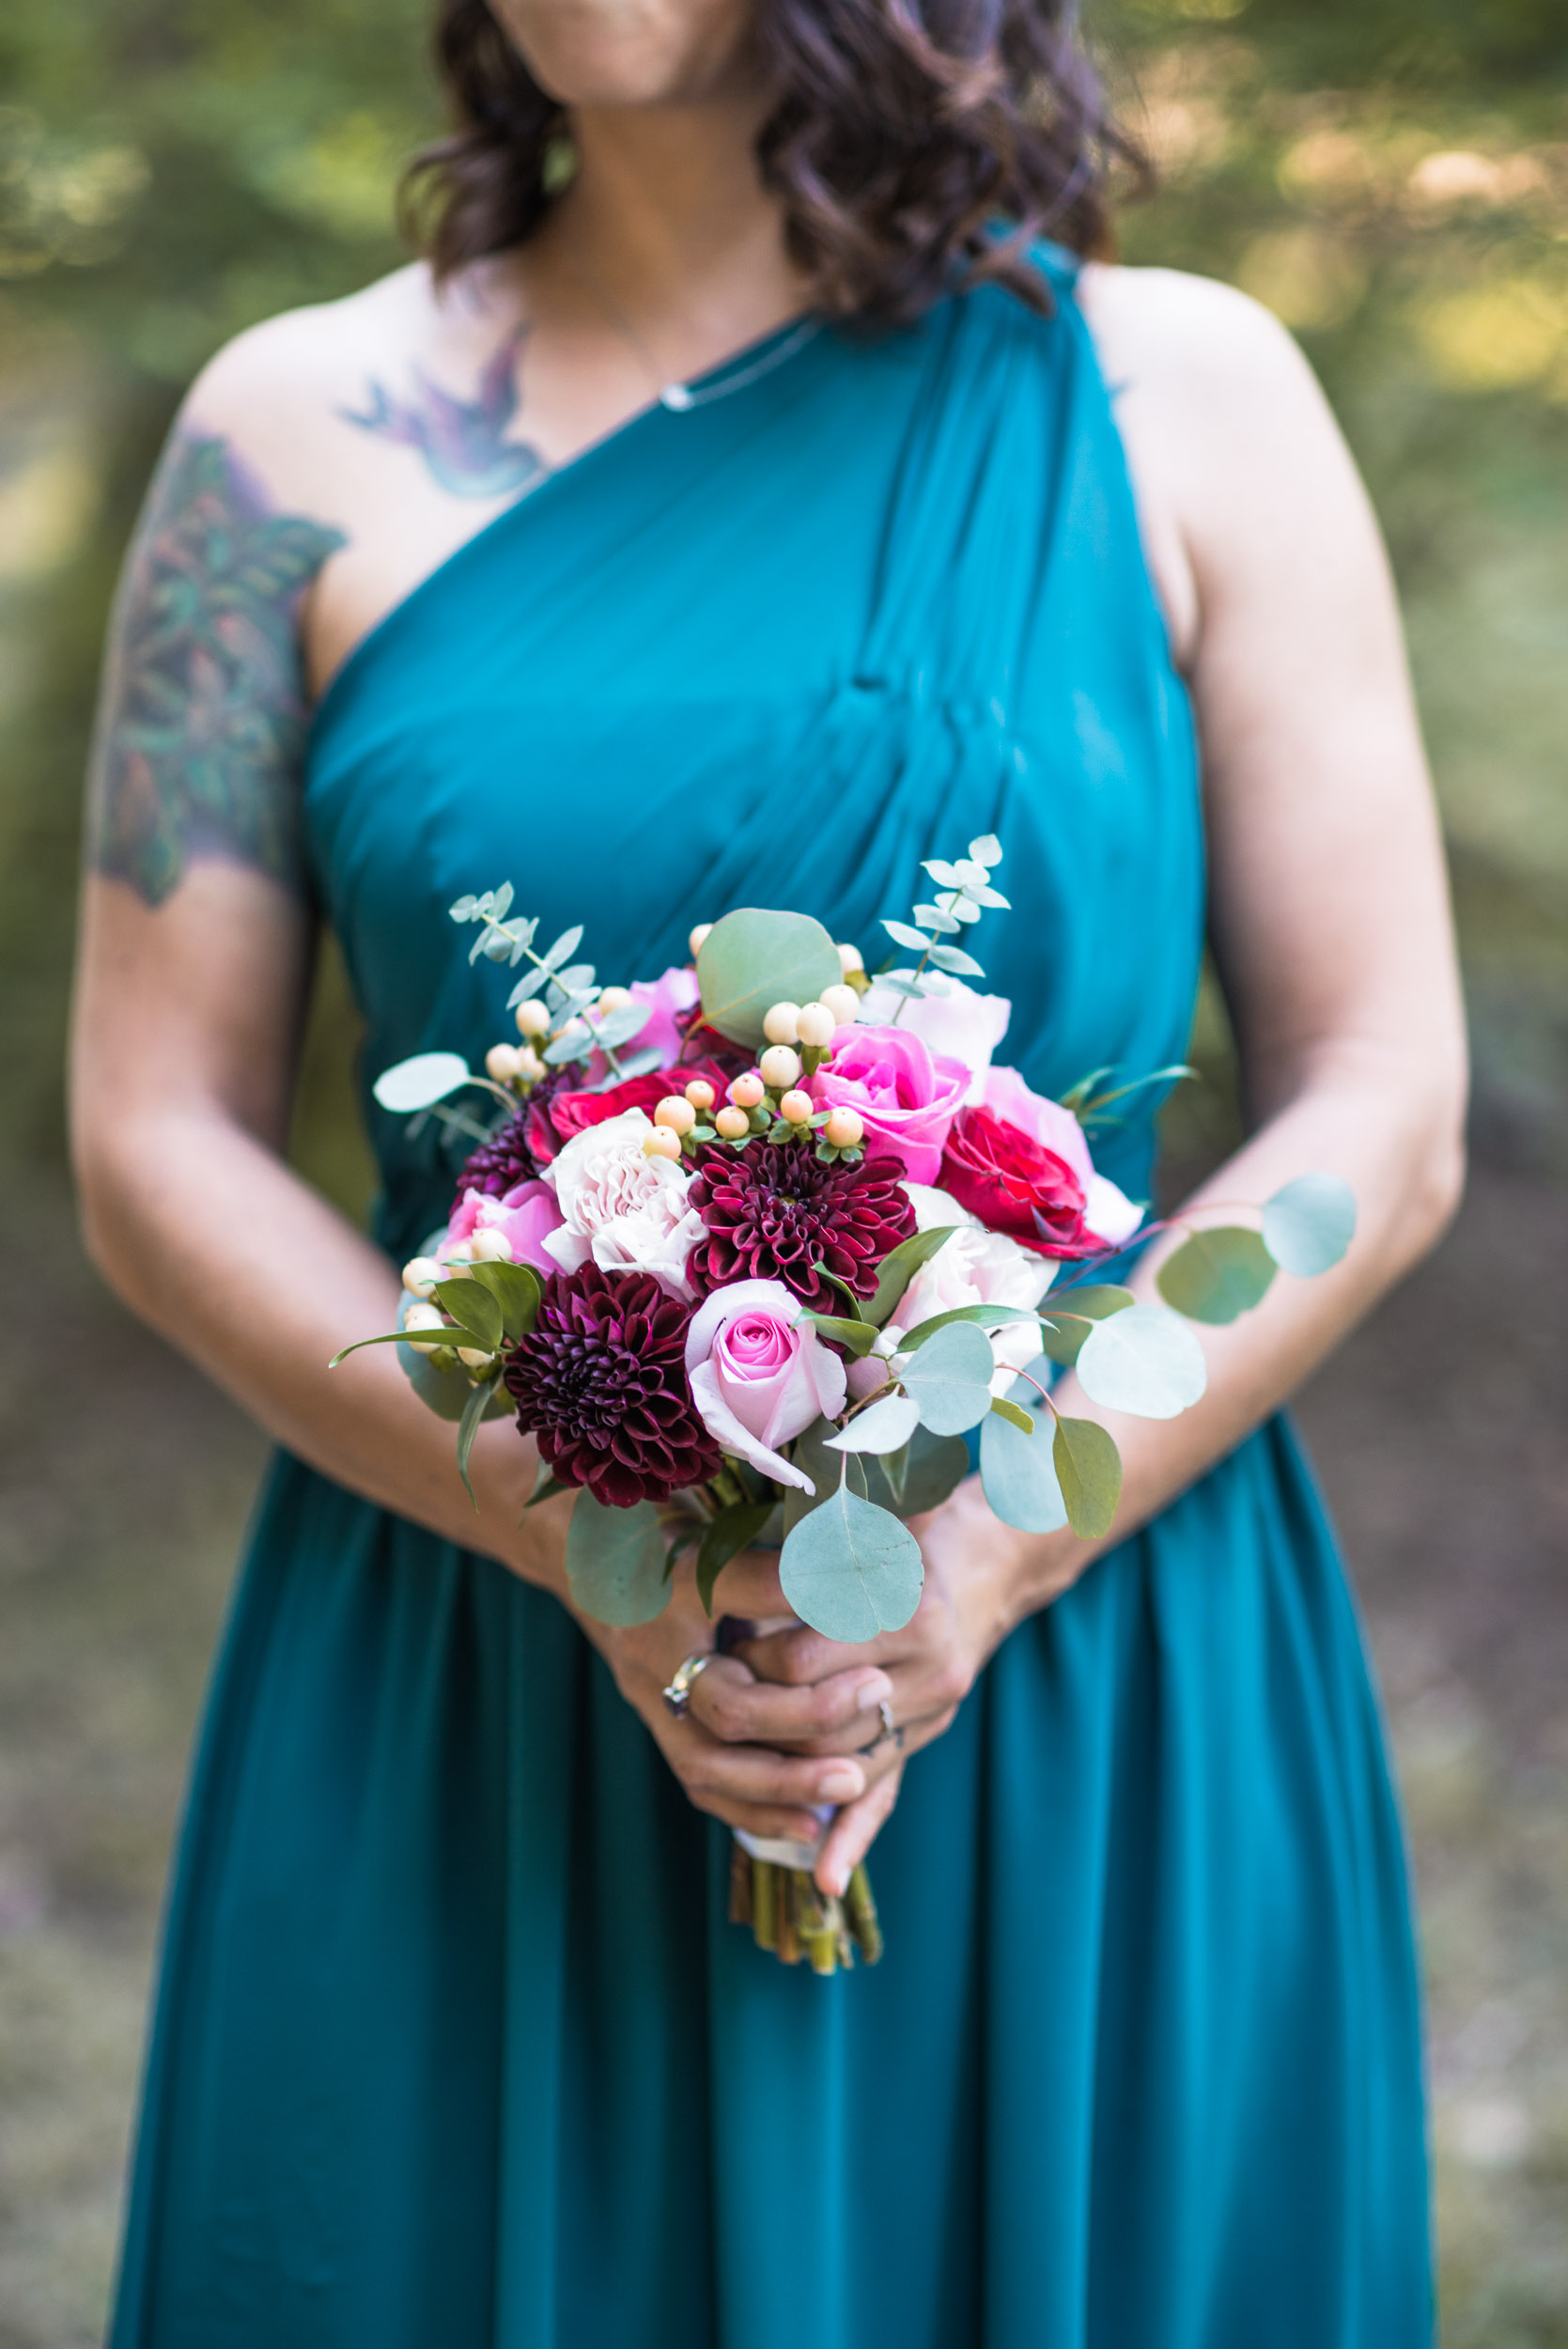 Maid of honour with bouquet